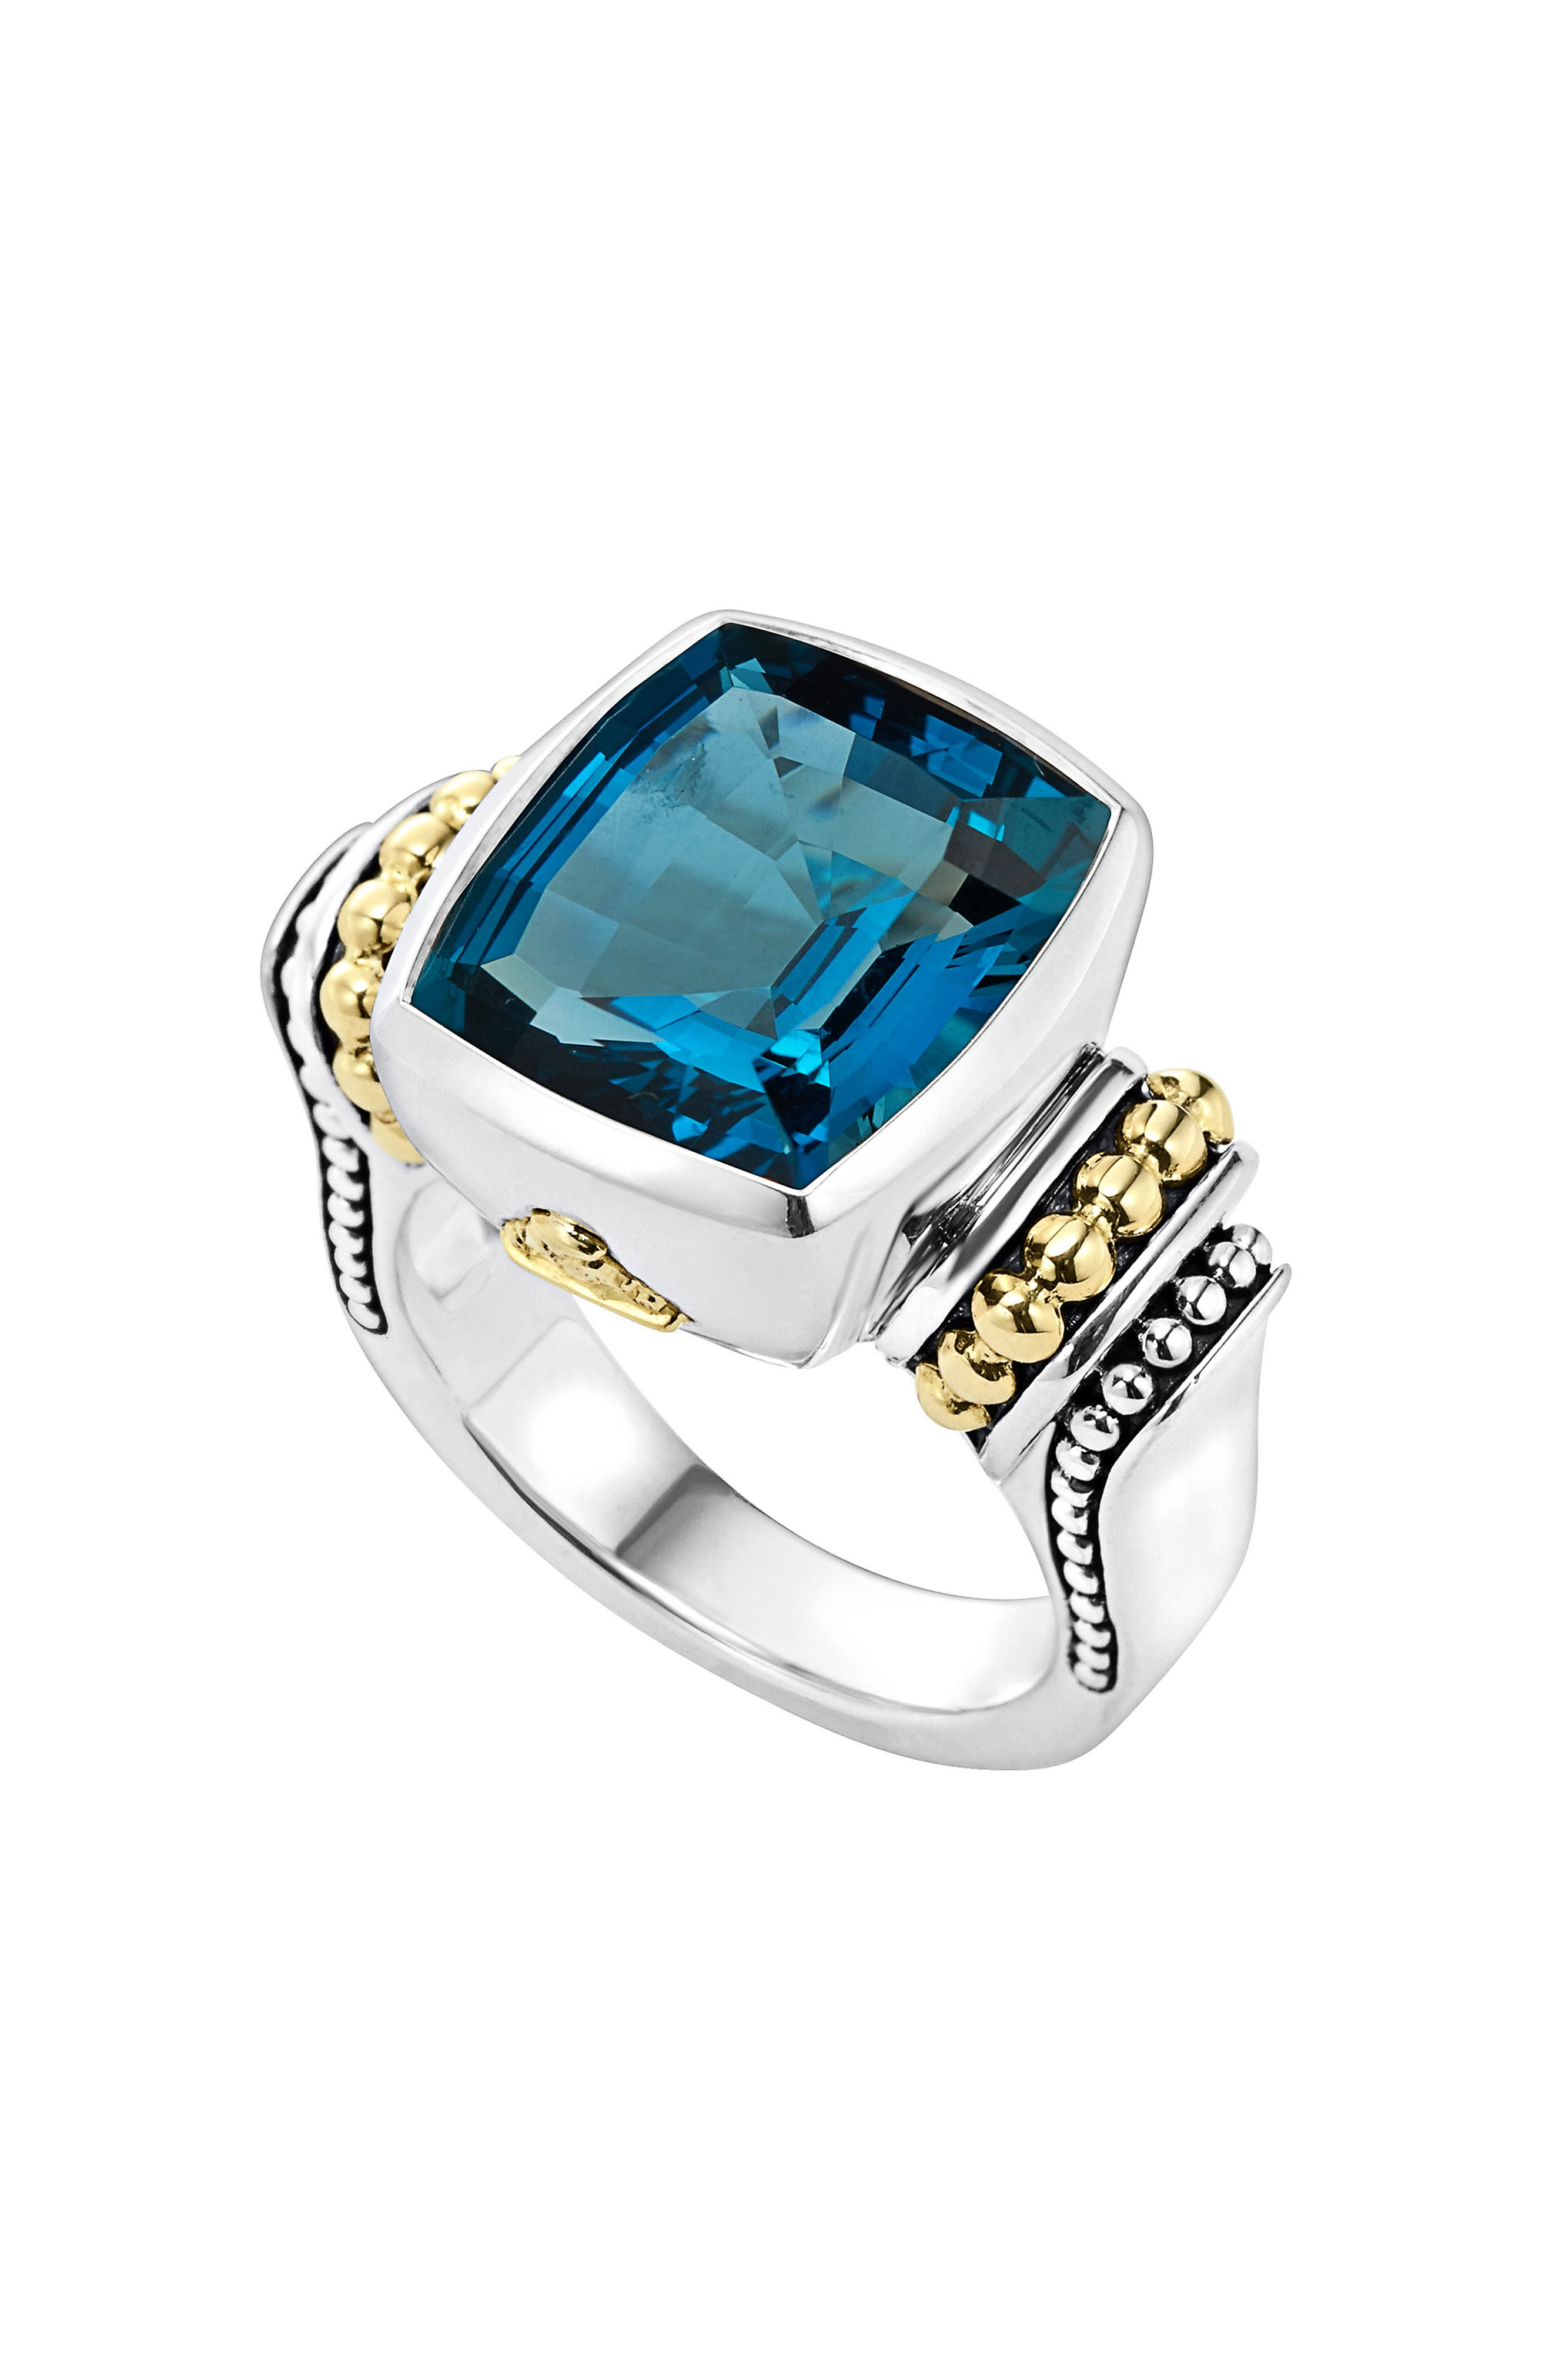 LAGOS 'Caviar Color' Medium Semiprecious Stone Ring